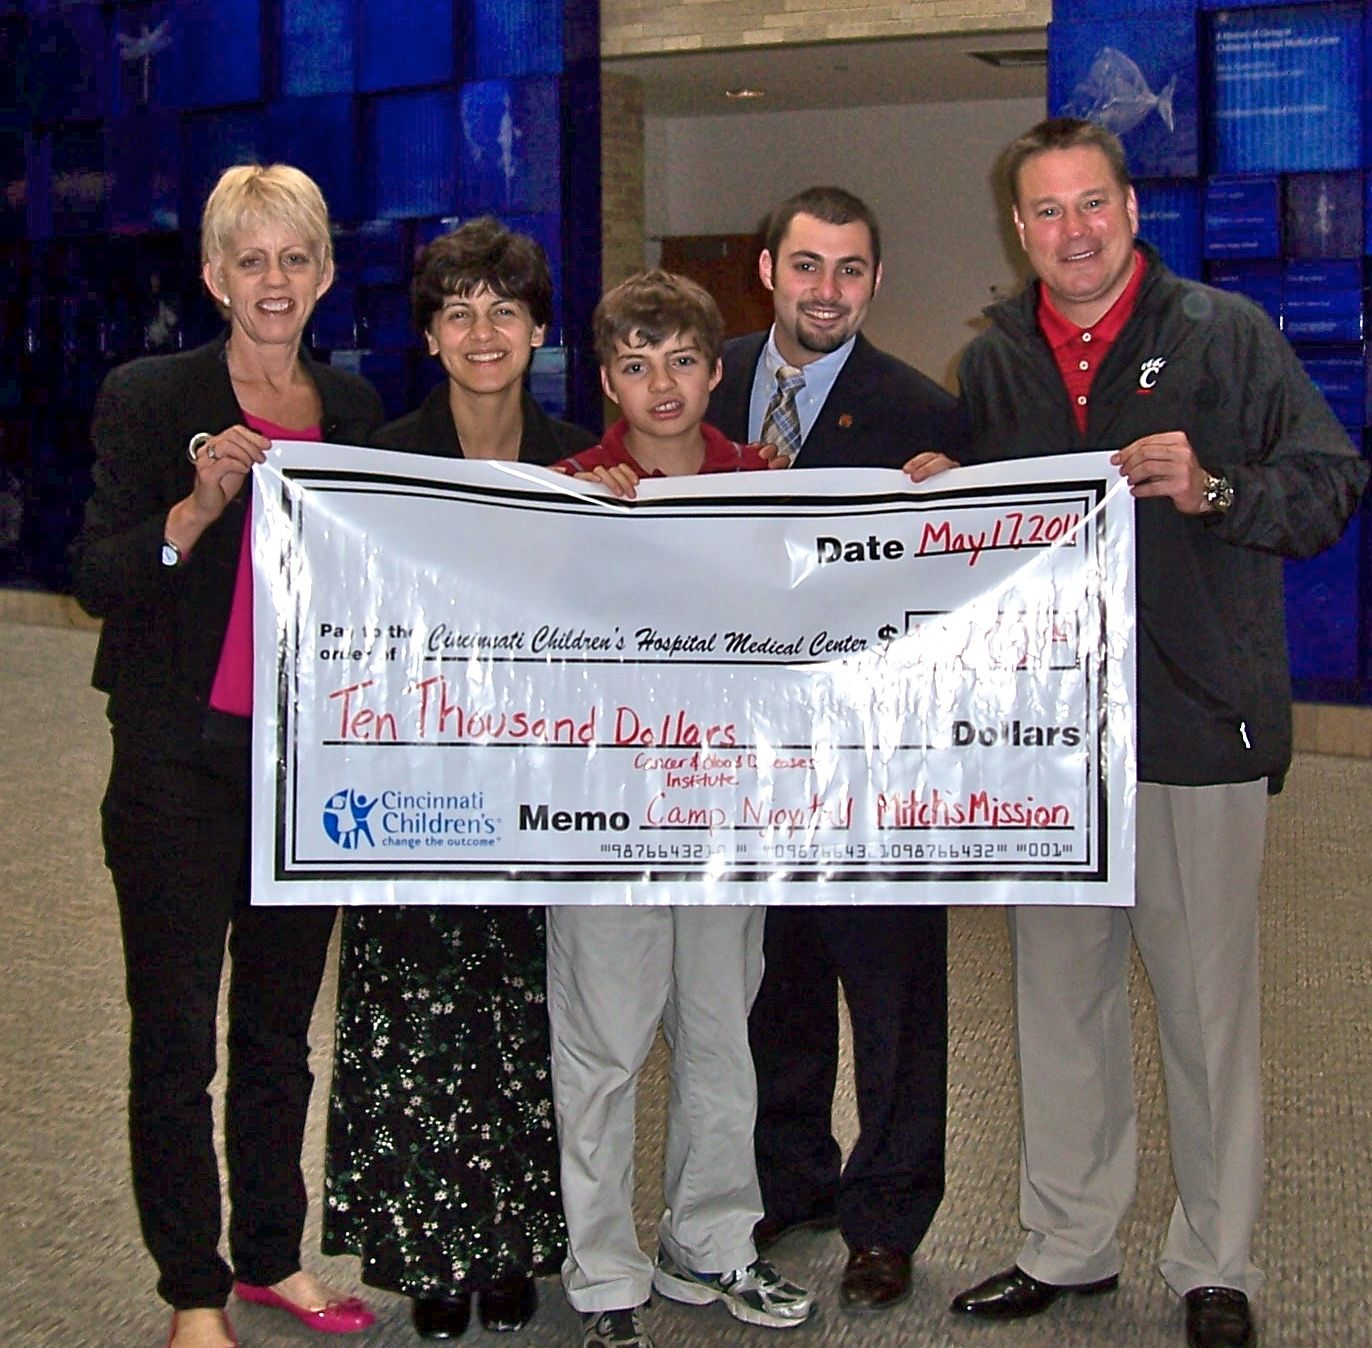 Local foundation, Mitch's Mission, presented a check for $10,000 to Cincinnati Children's.  On hand were Dee Stone, Dr. Mariam Fouladi, an oncologist at Children's, Mitch Stone, Drew Smith, UC Student body President, and Butch Jones, UC Head Football coach.